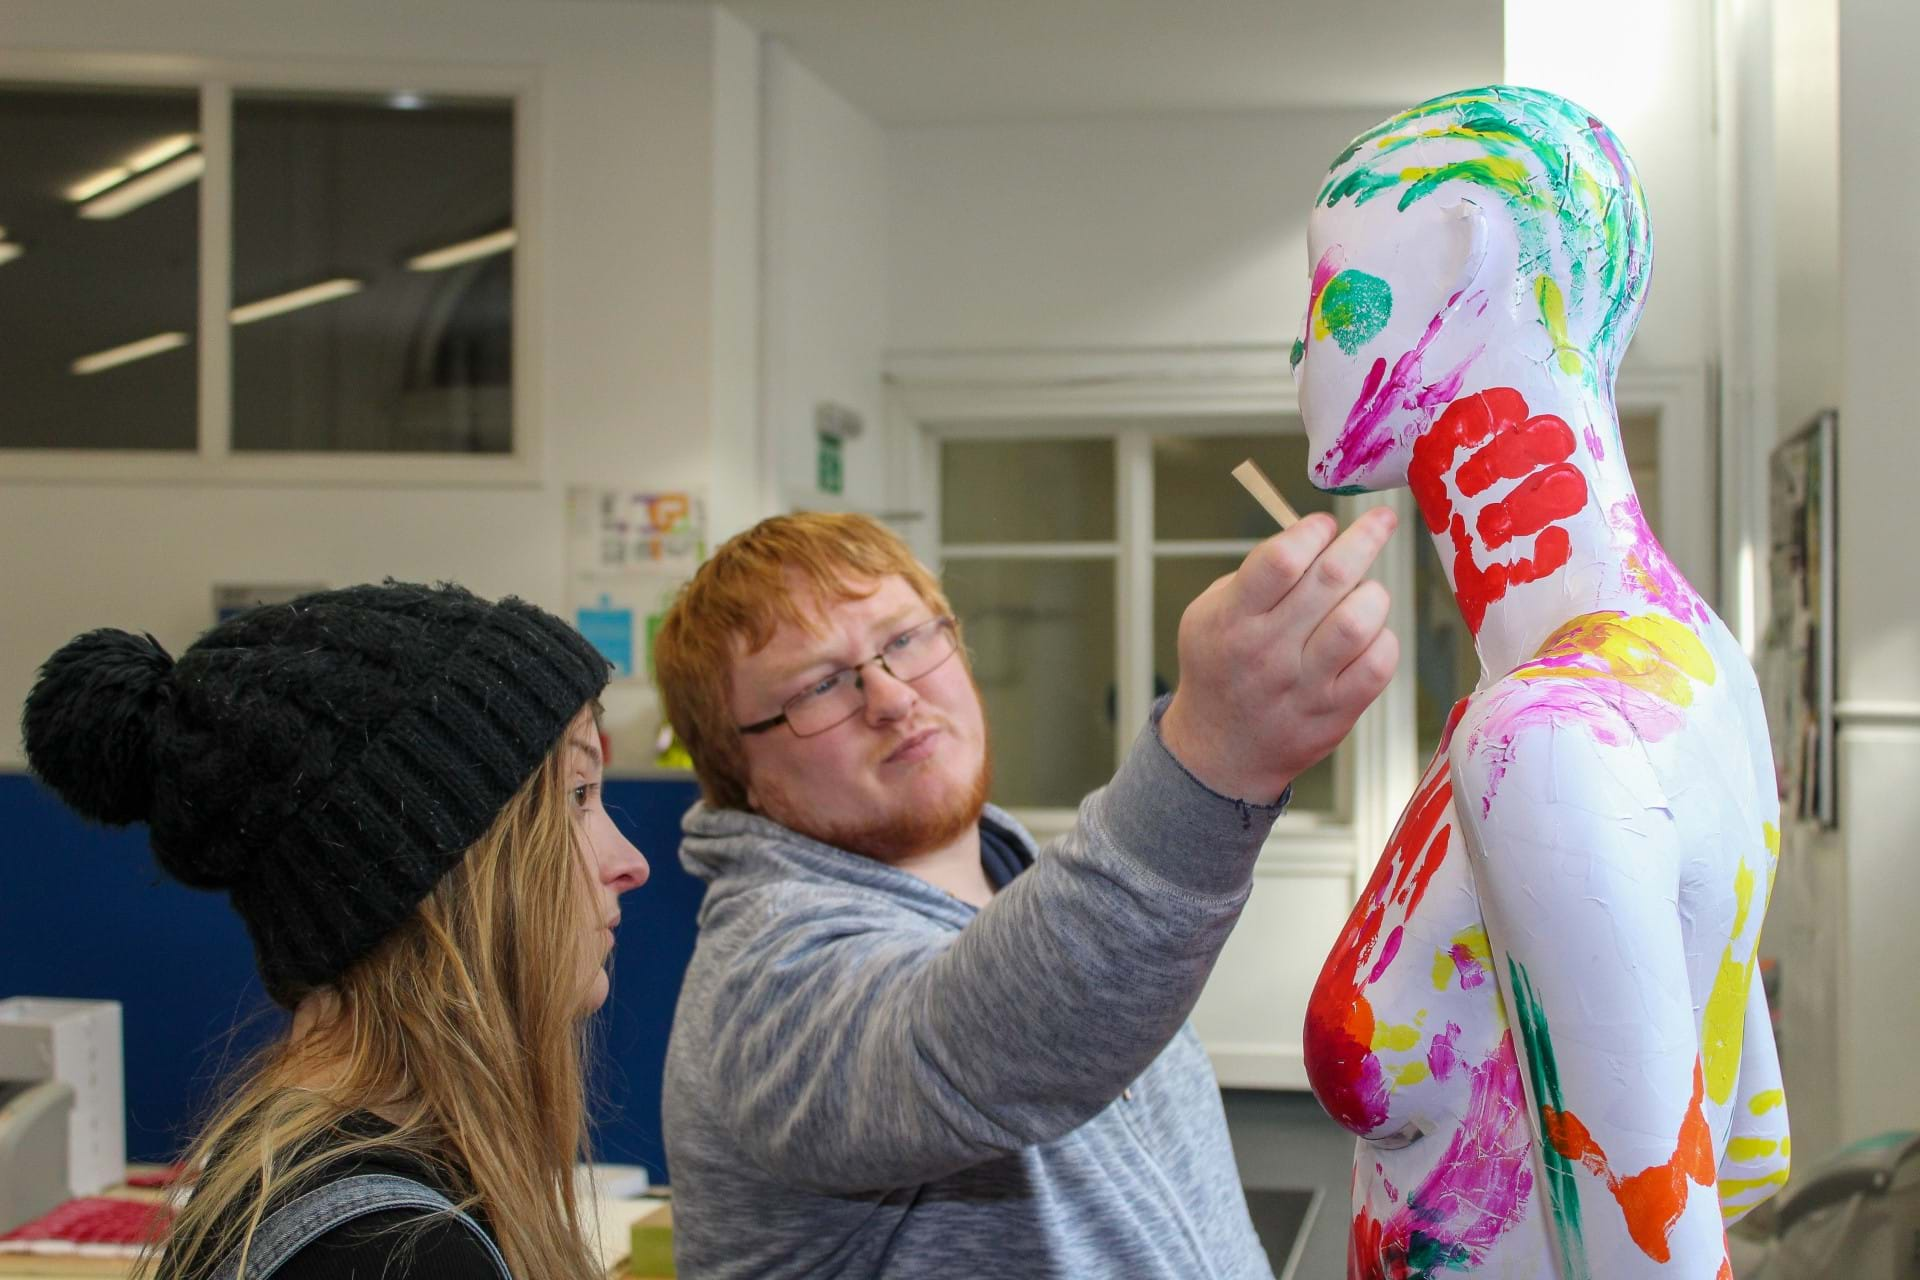 Students Robyn McMillan and Jamie Haddow turn a store mannequin into a games controller